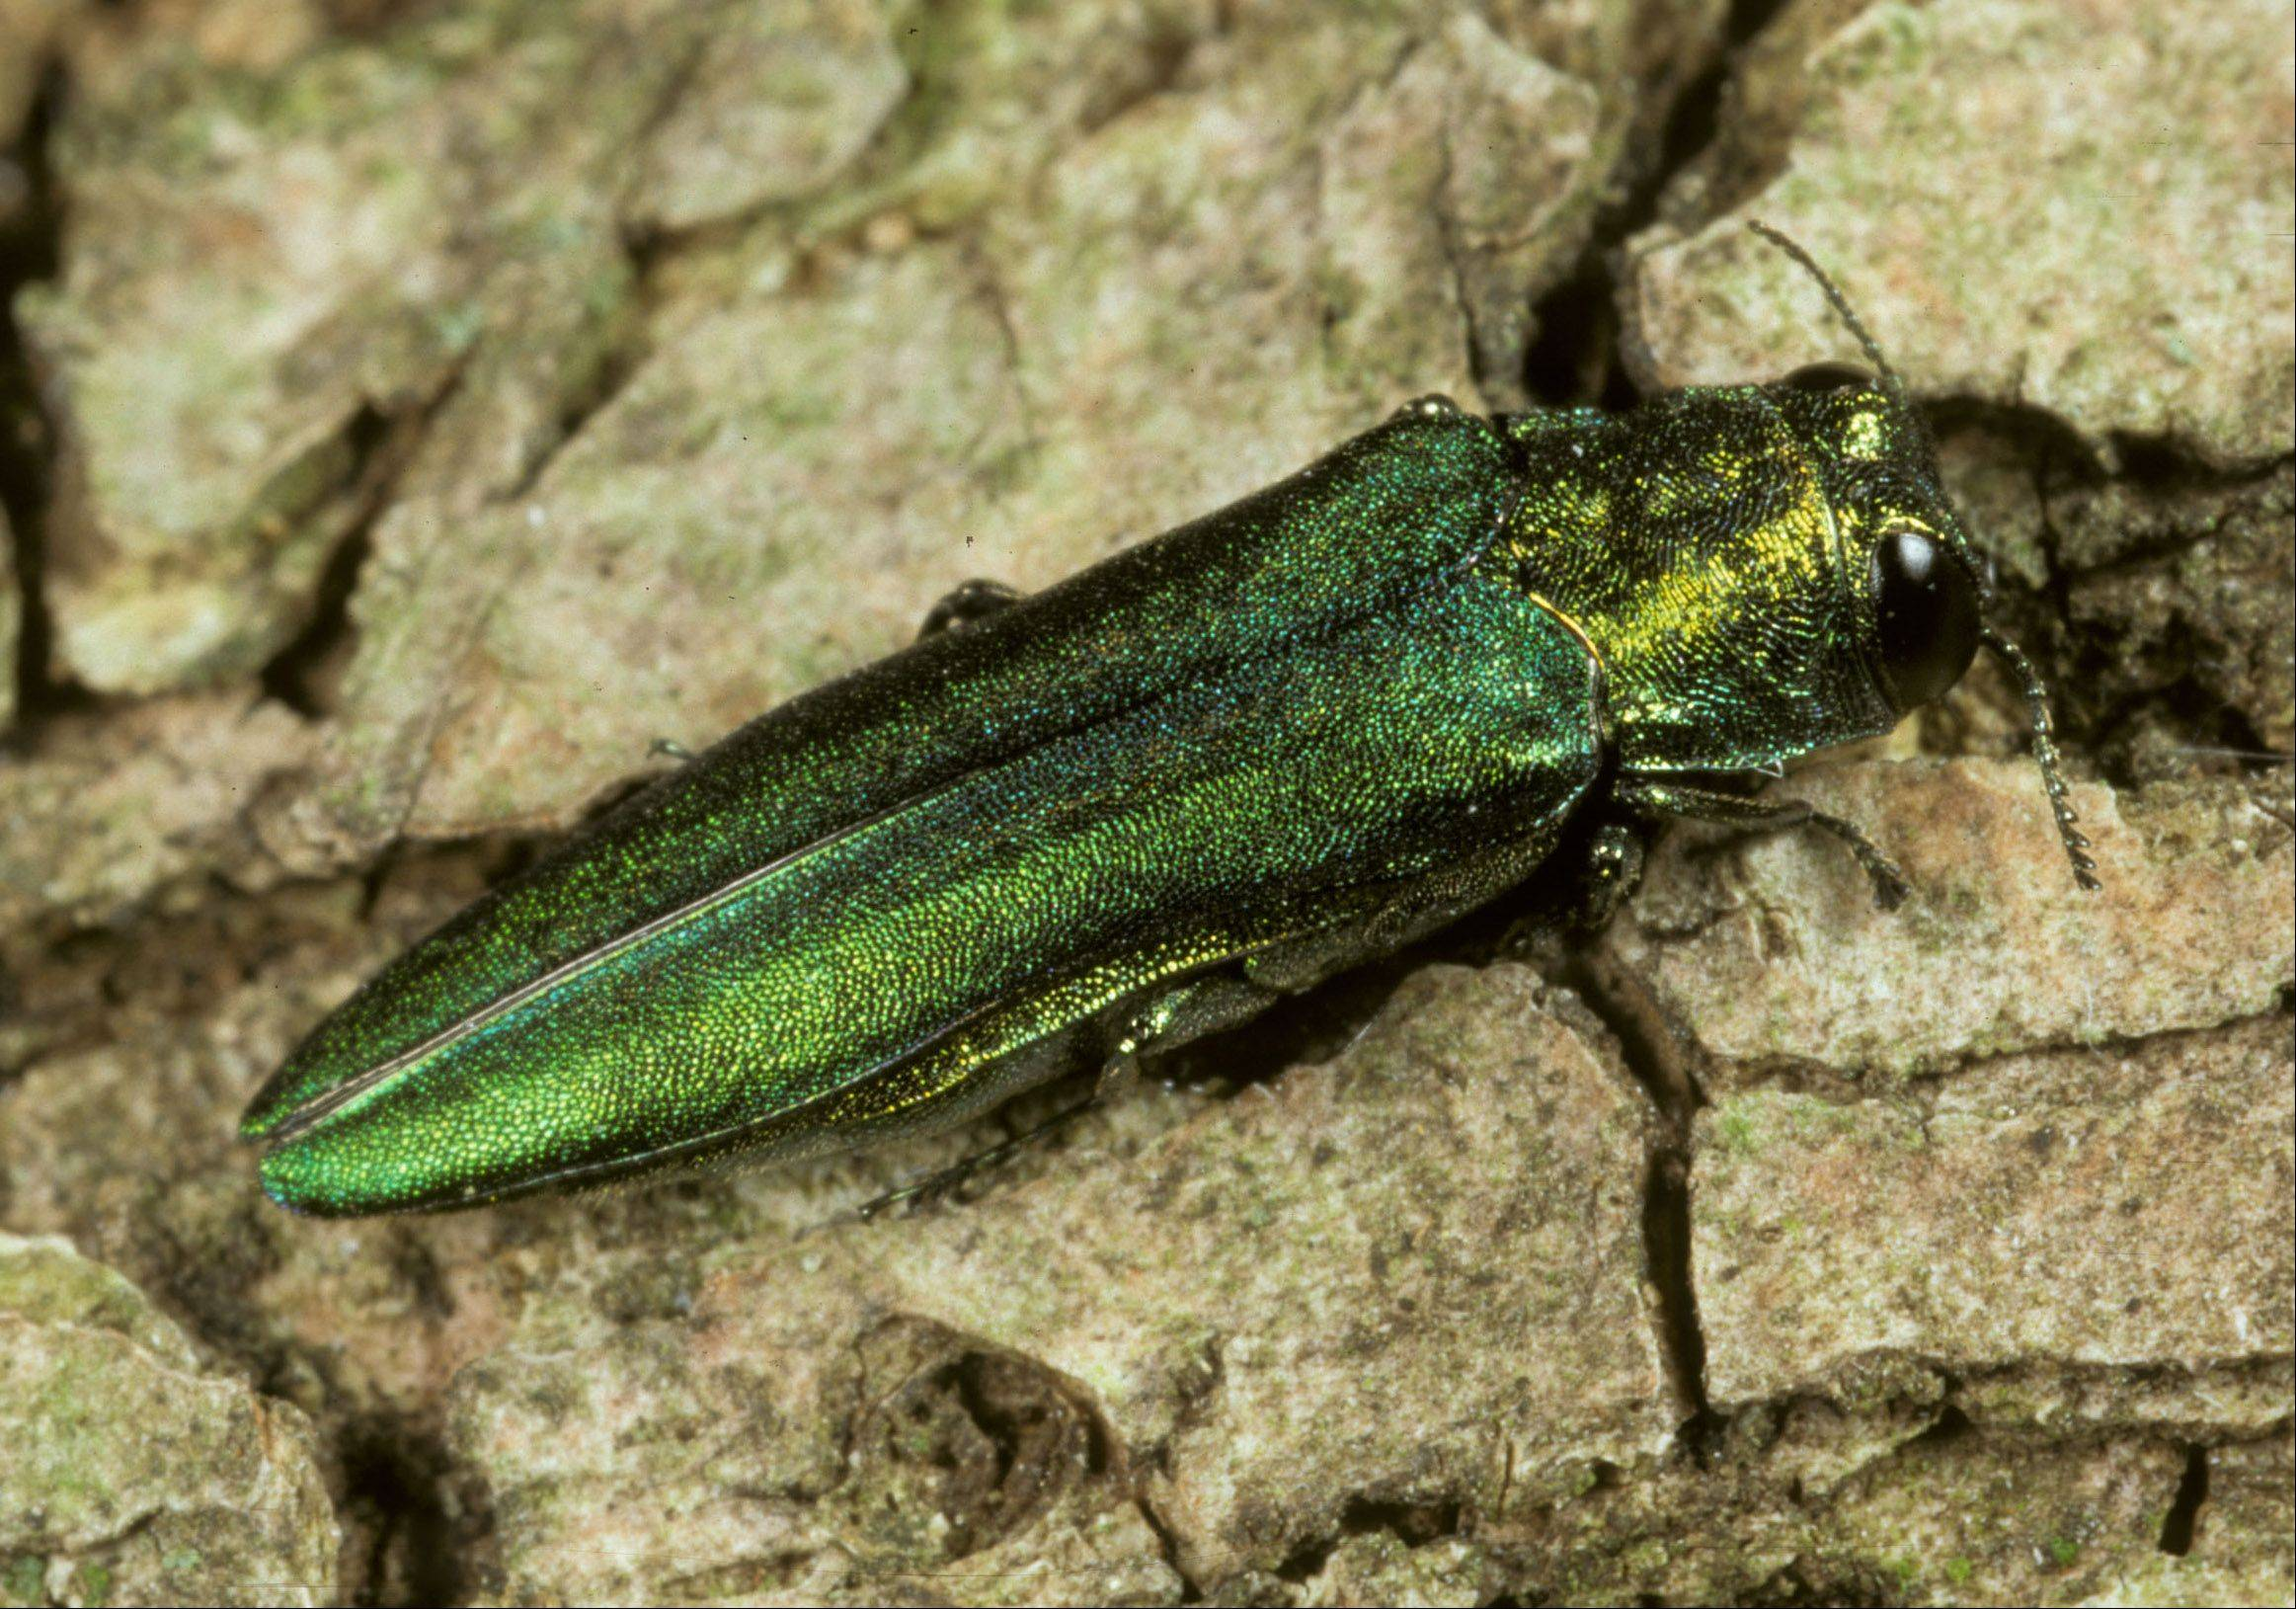 Photo courtesy of University of Illinois entomology Professor James Appleby. A closer look at the emerald ash borer, which is responsible for destroying ash trees.